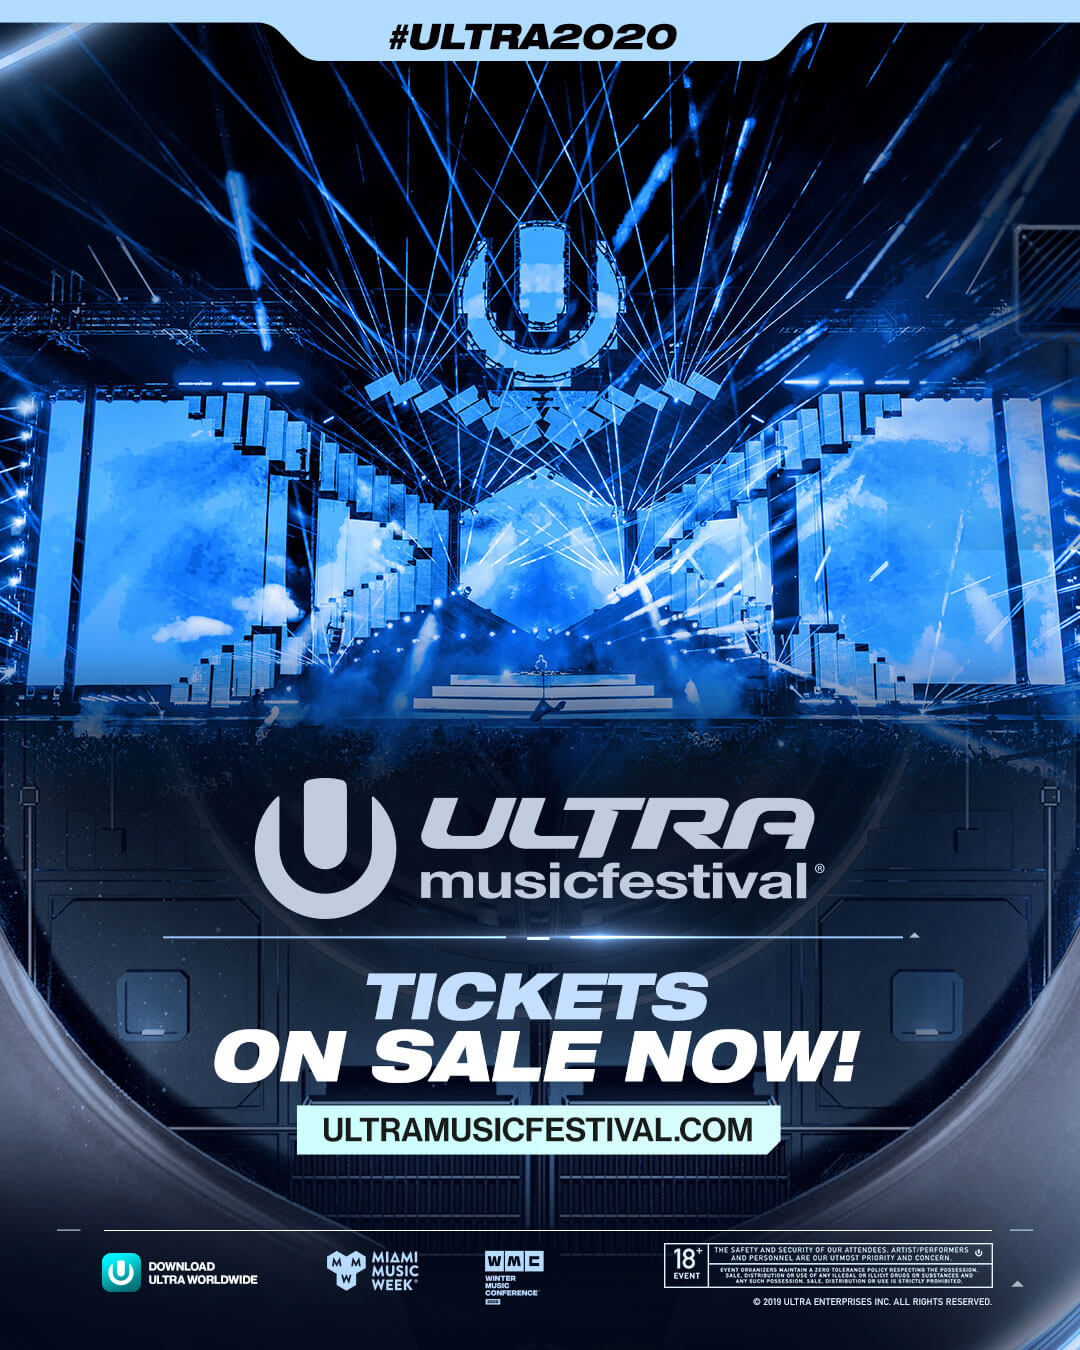 Ultra Music Festival 2020 Tickets On Sale Now!